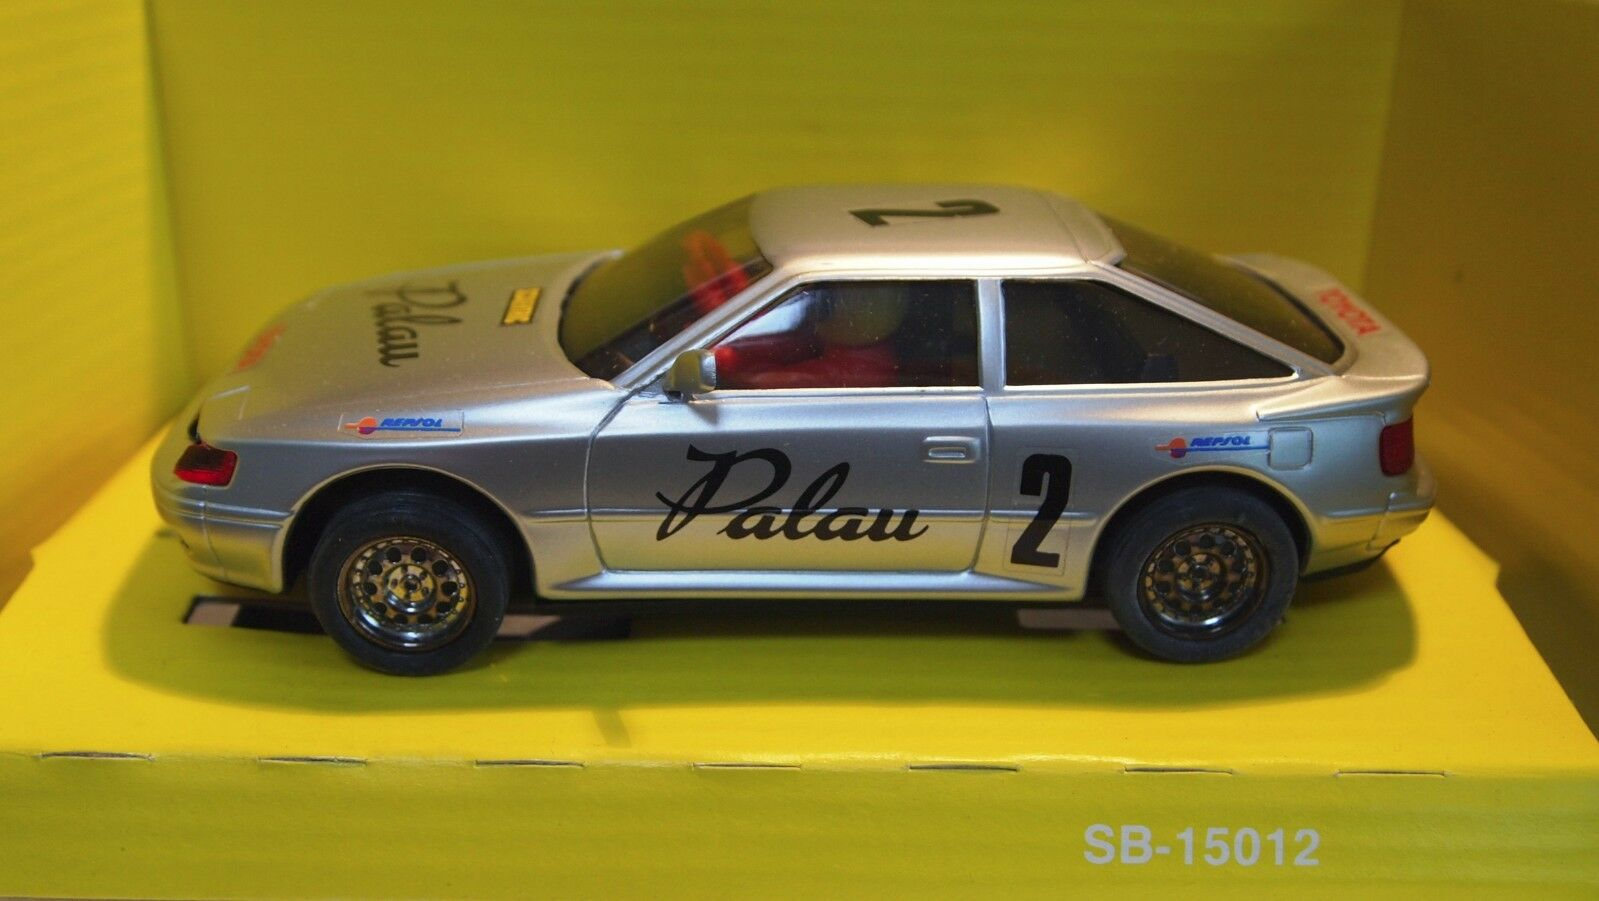 Scalextric SCX 8367 Toyota Celica PALAU -Spanish Import - Limited Ed Rare Car